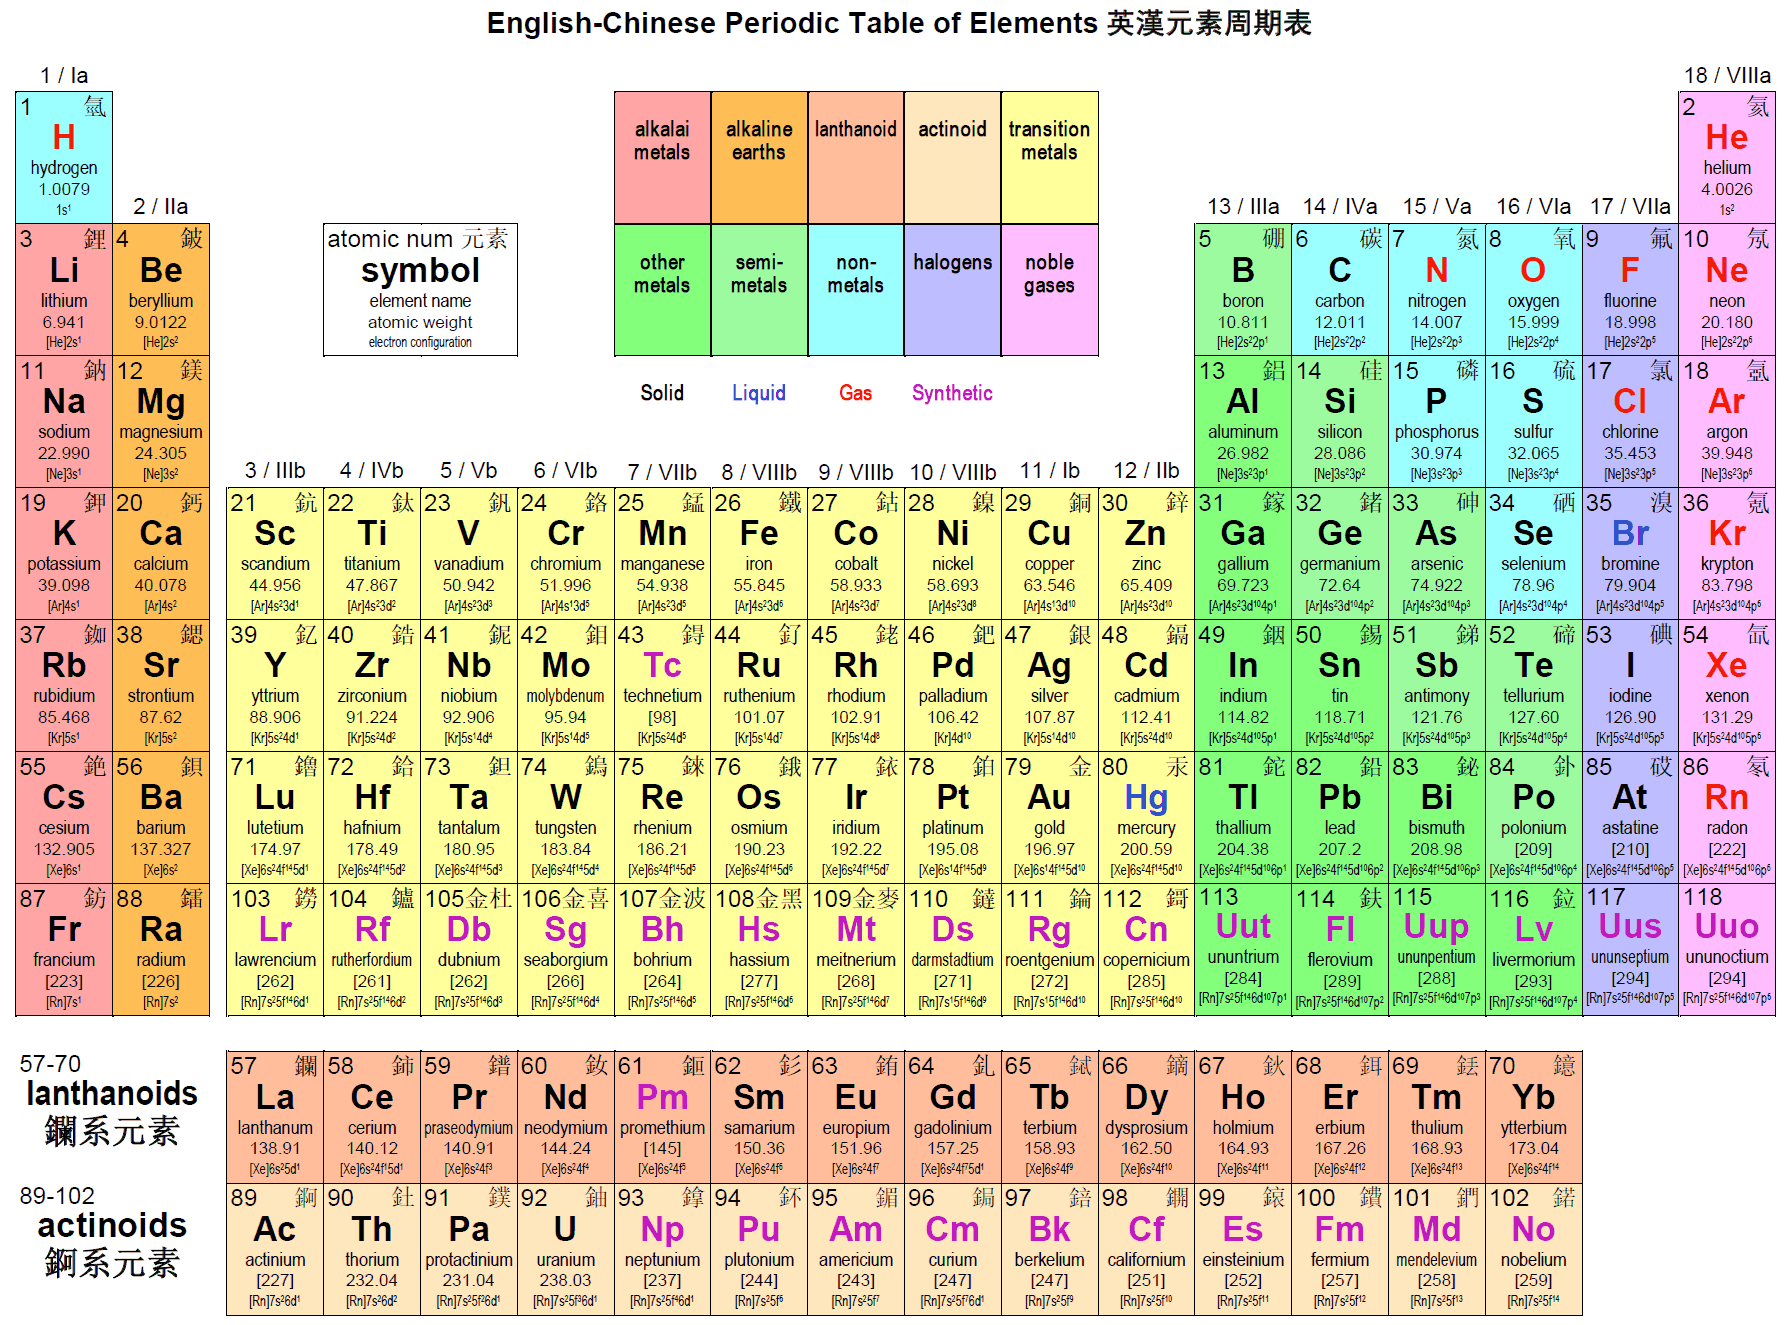 Periodic table of elements chart version of english chinese periodic table of elements chart version of english chinese periodic table of elements pdf 110k urtaz Choice Image